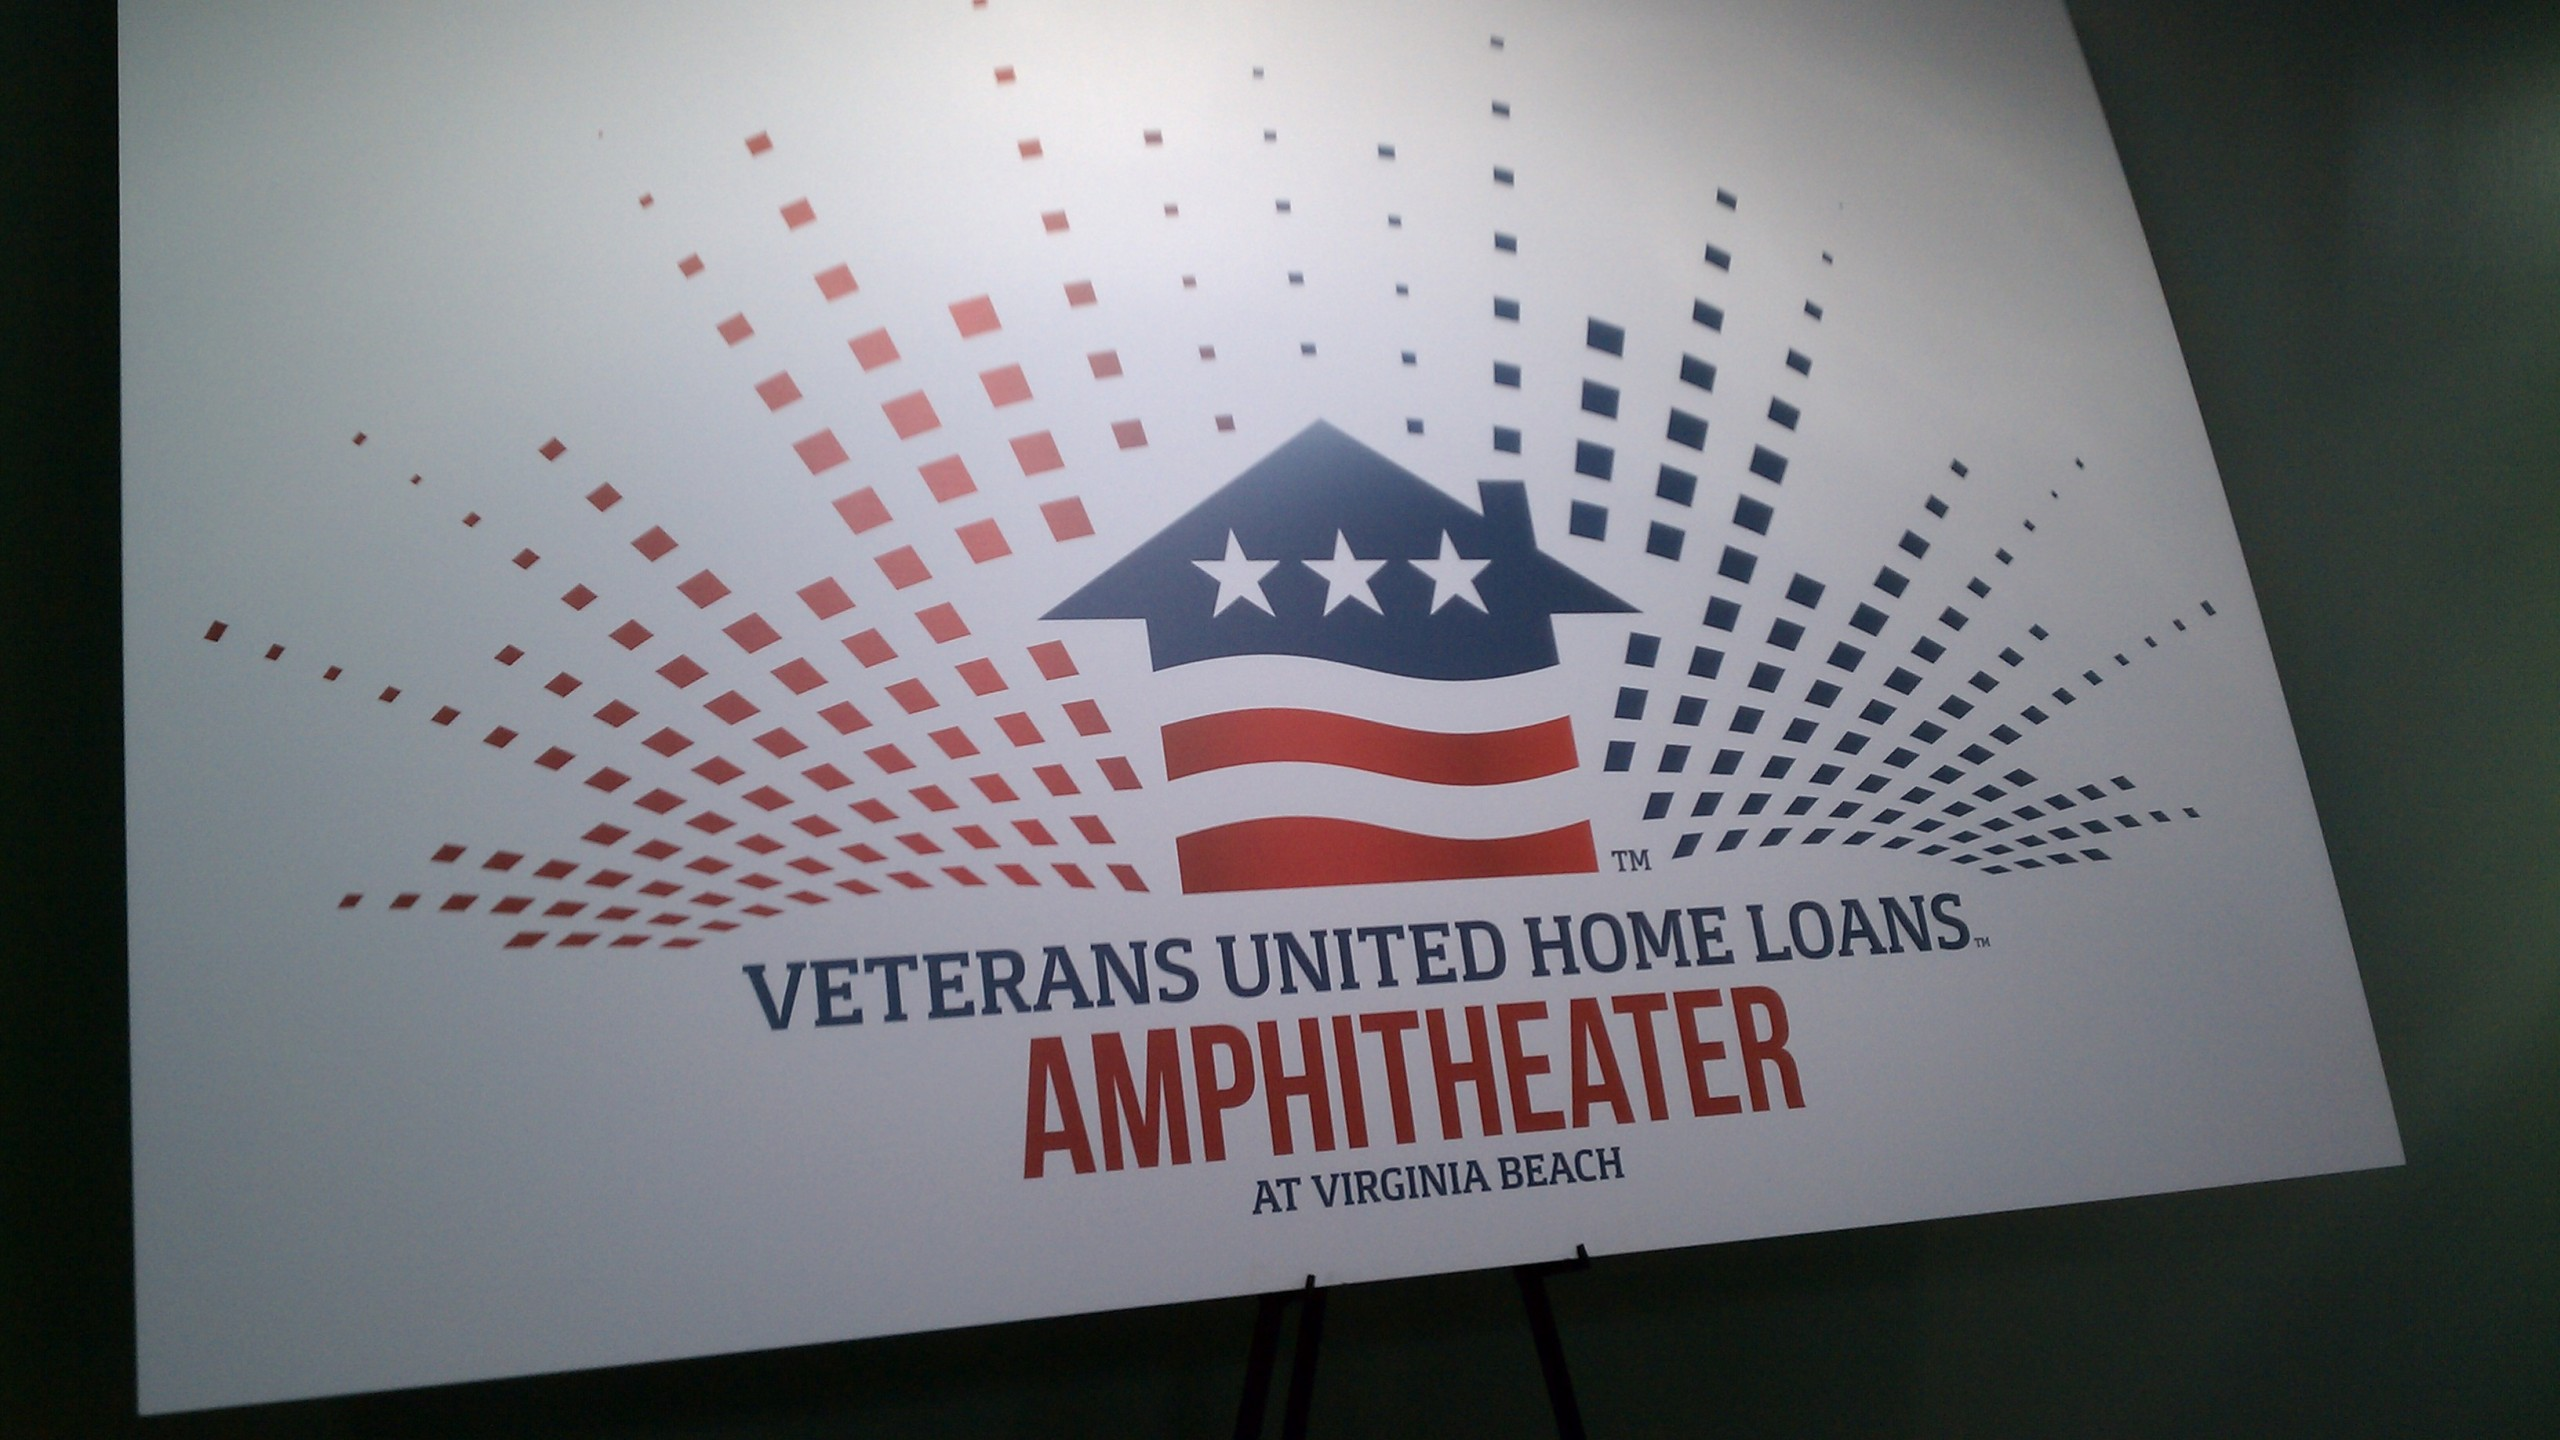 Veterans Home Loan Amphitheater To Host Hiring Event At